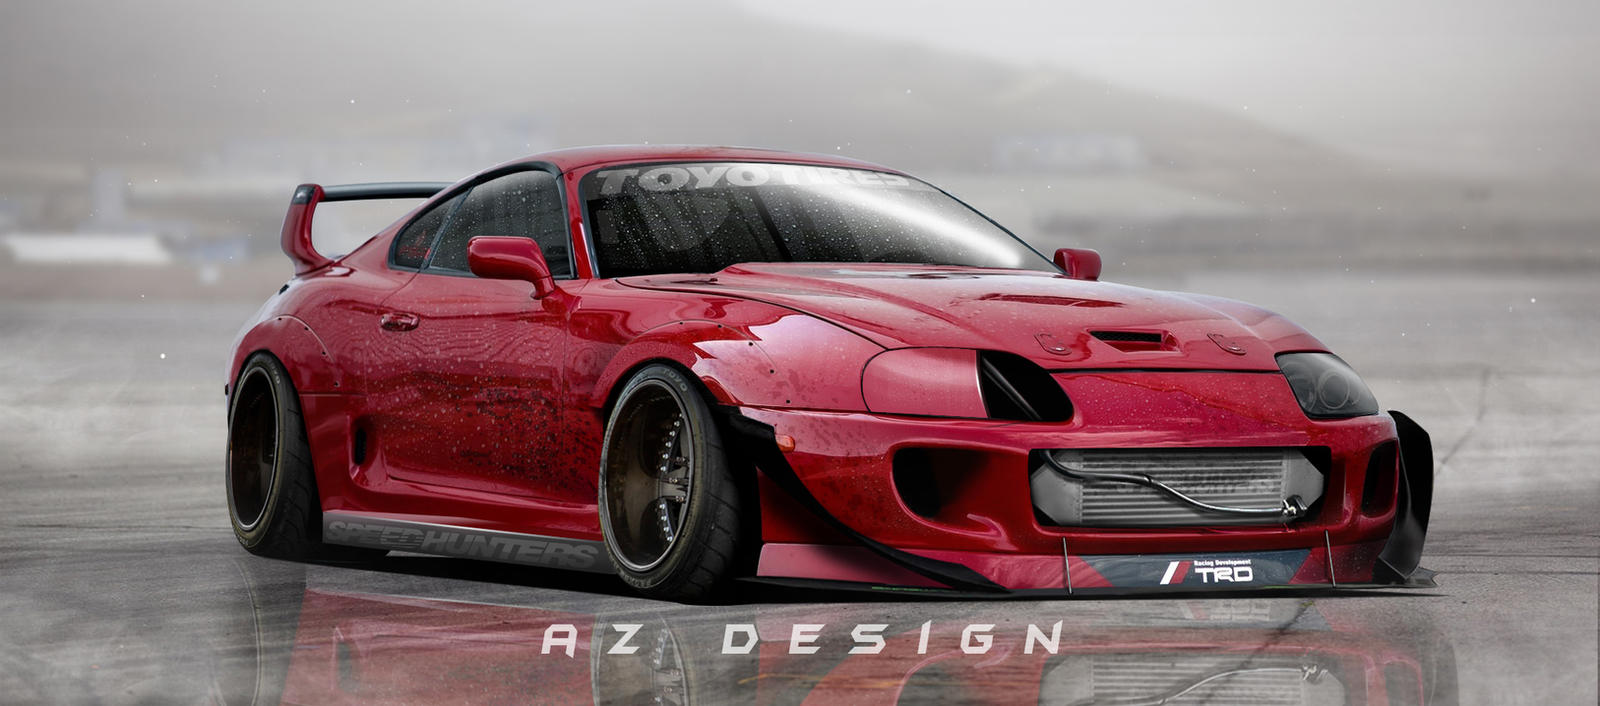 Toyota Supra Rocket Bunny By Azdesign1 On Deviantart